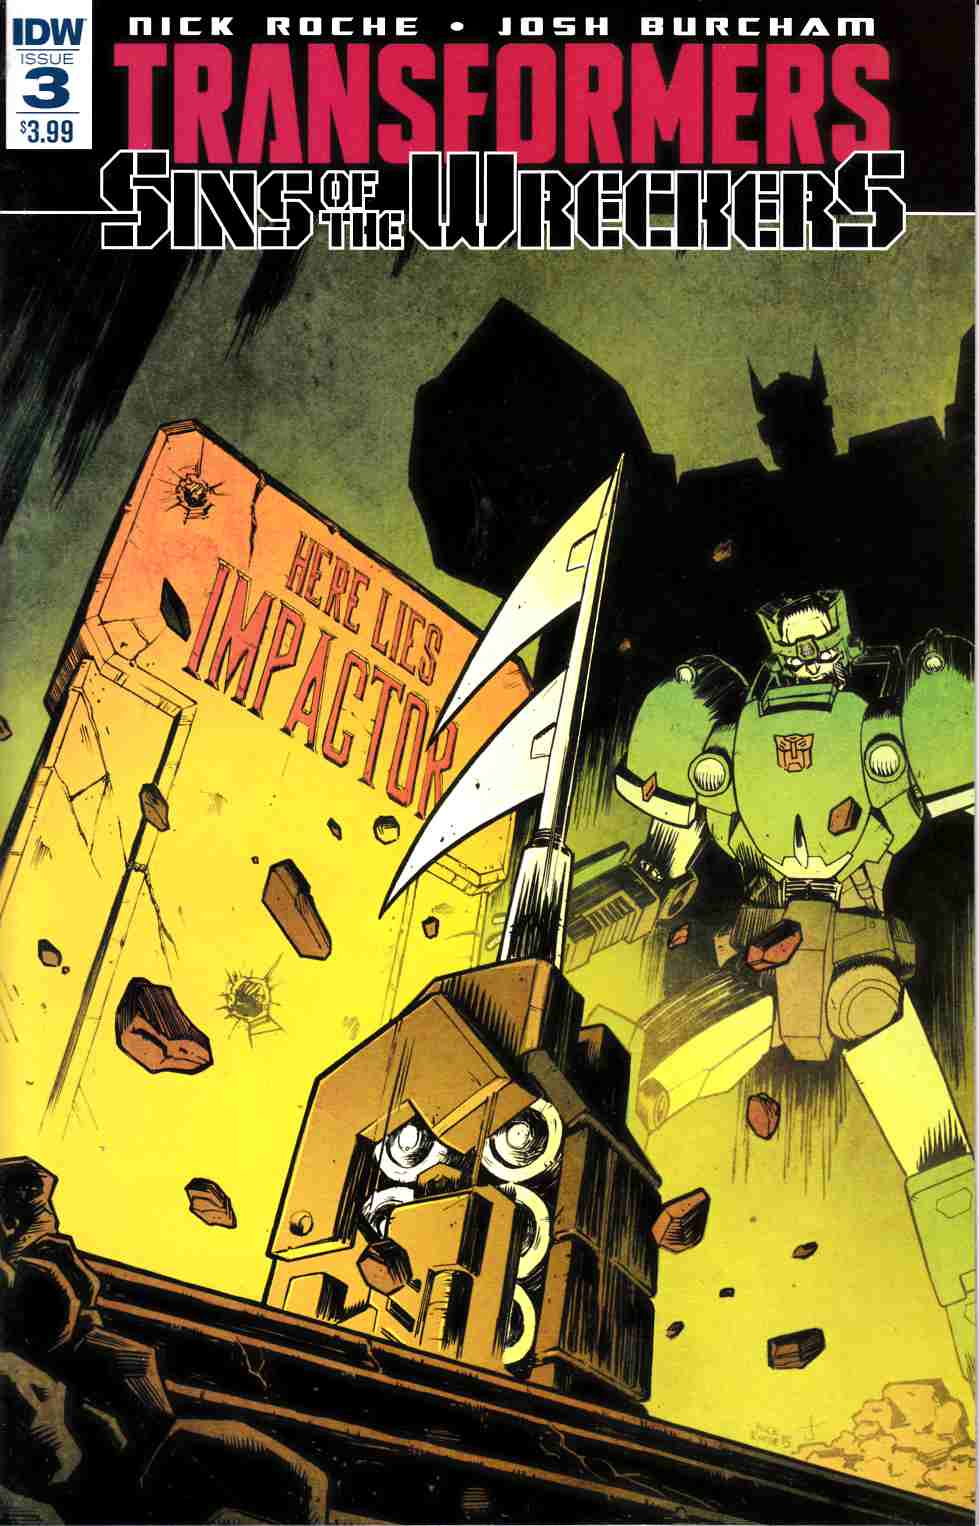 Transformers Sins of Wreckers #3 [IDW Comic] THUMBNAIL